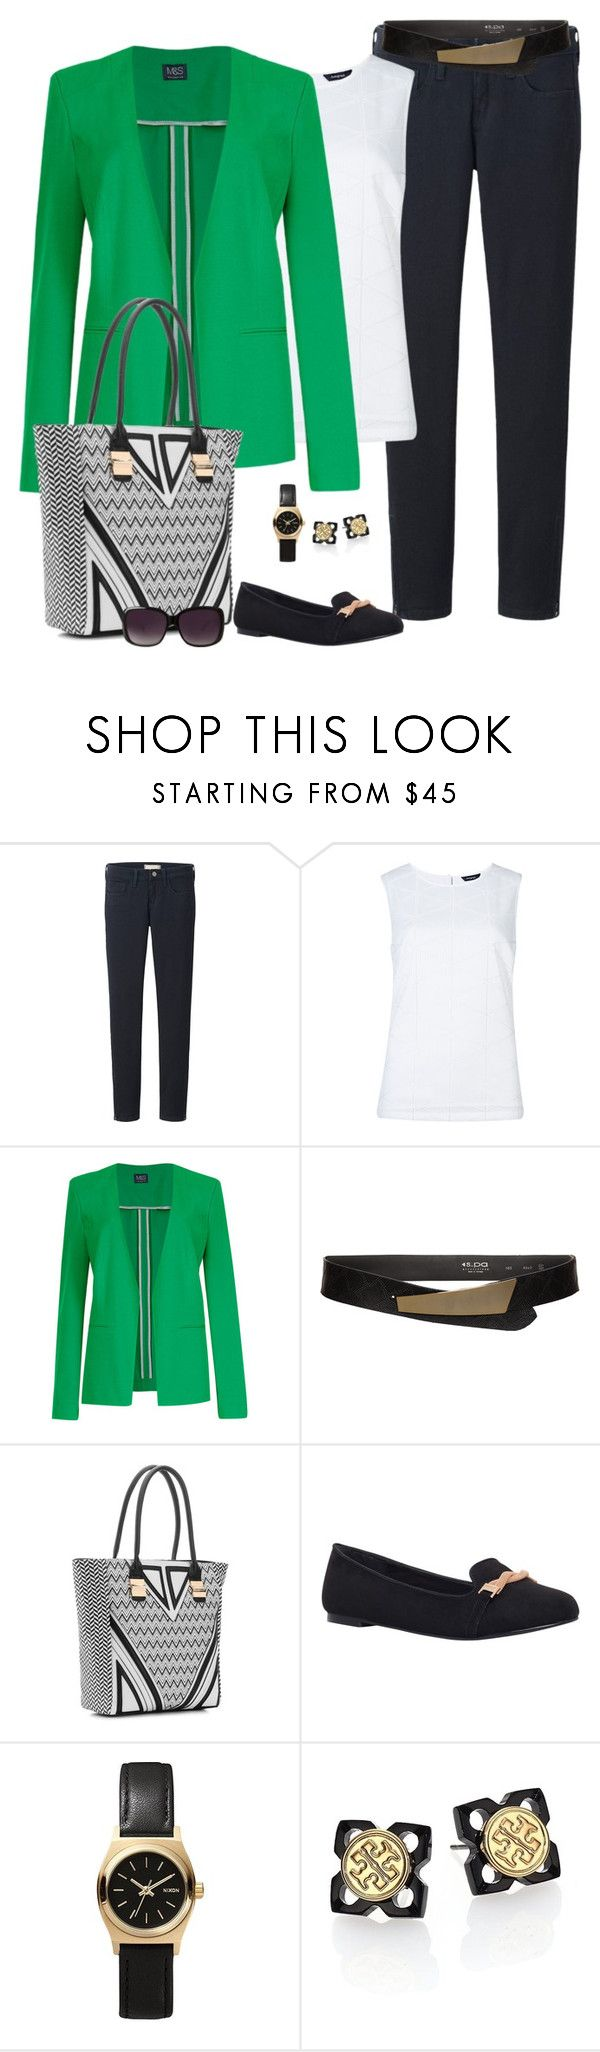 """""""St. Patty's Day"""" by fiftynotfrumpy ❤ liked on Polyvore featuring Uniqlo, M&S, s.pa accessoires, Melie Bianco, Carvela, Nixon, Tory Burch and Merona"""